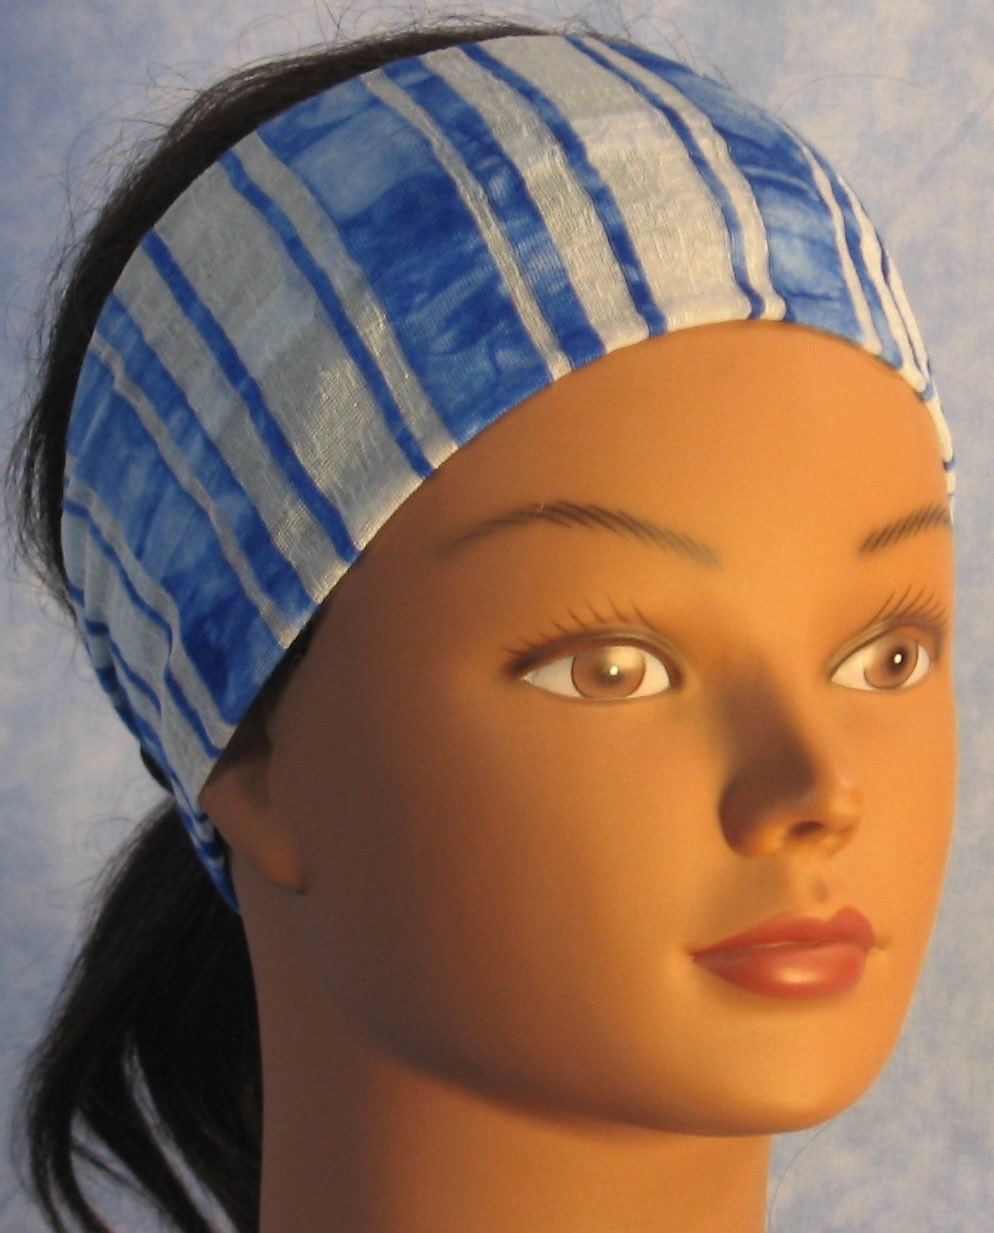 Headband-Blue White Stripe Burnout Knit-Youth S-M